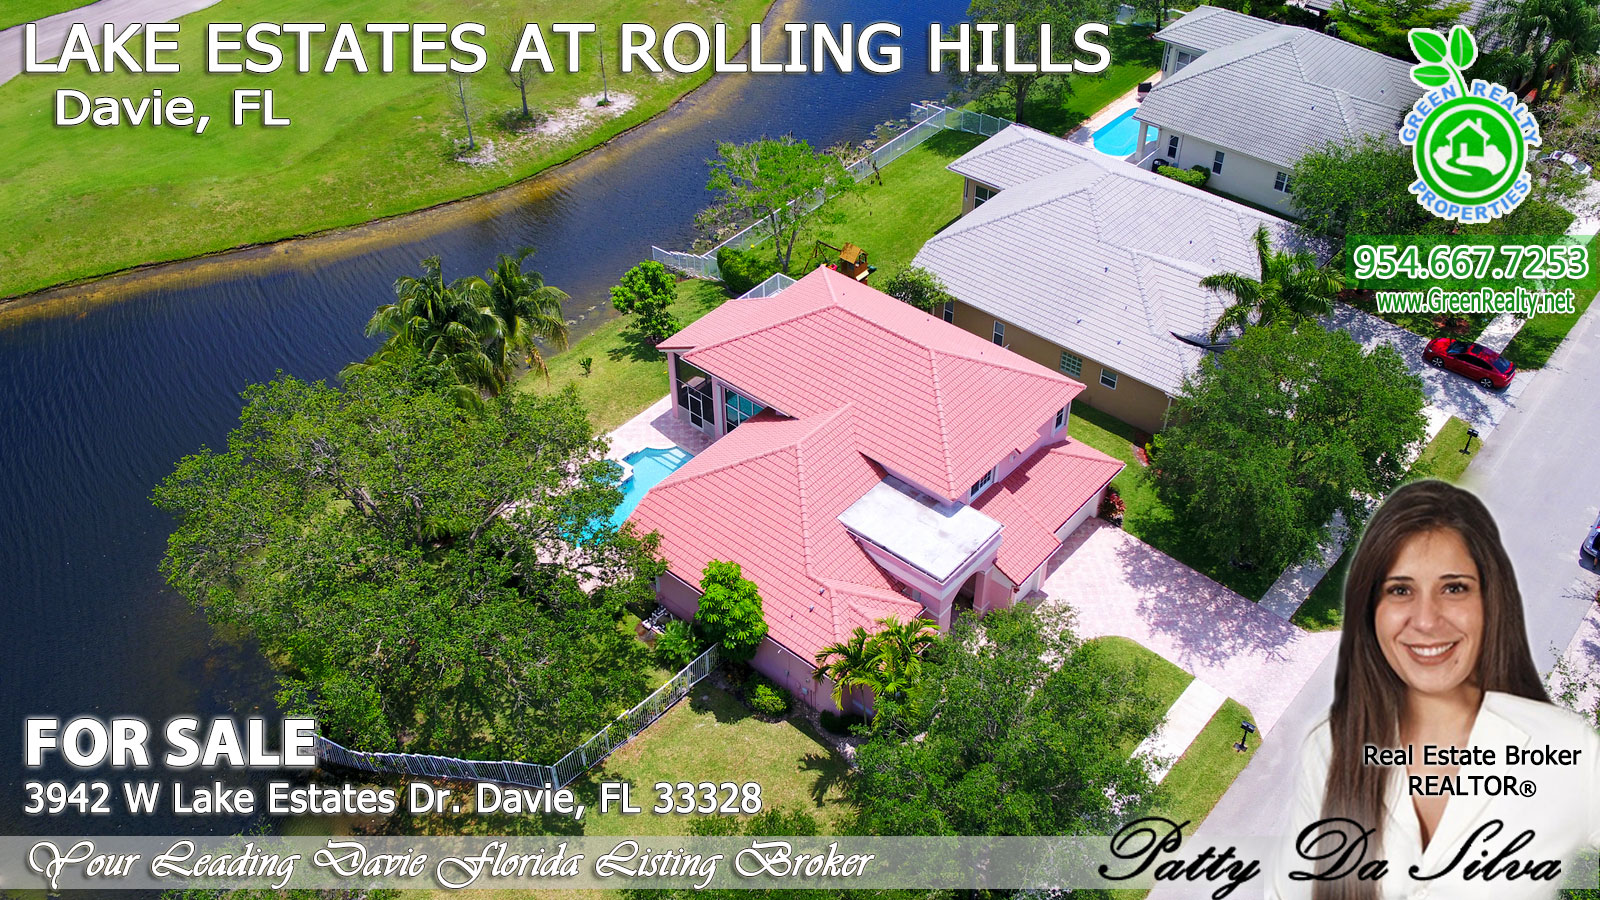 Your-leading-davie-florida-listing-broker-Patty-da-silva-9546677253-green-realty-properties